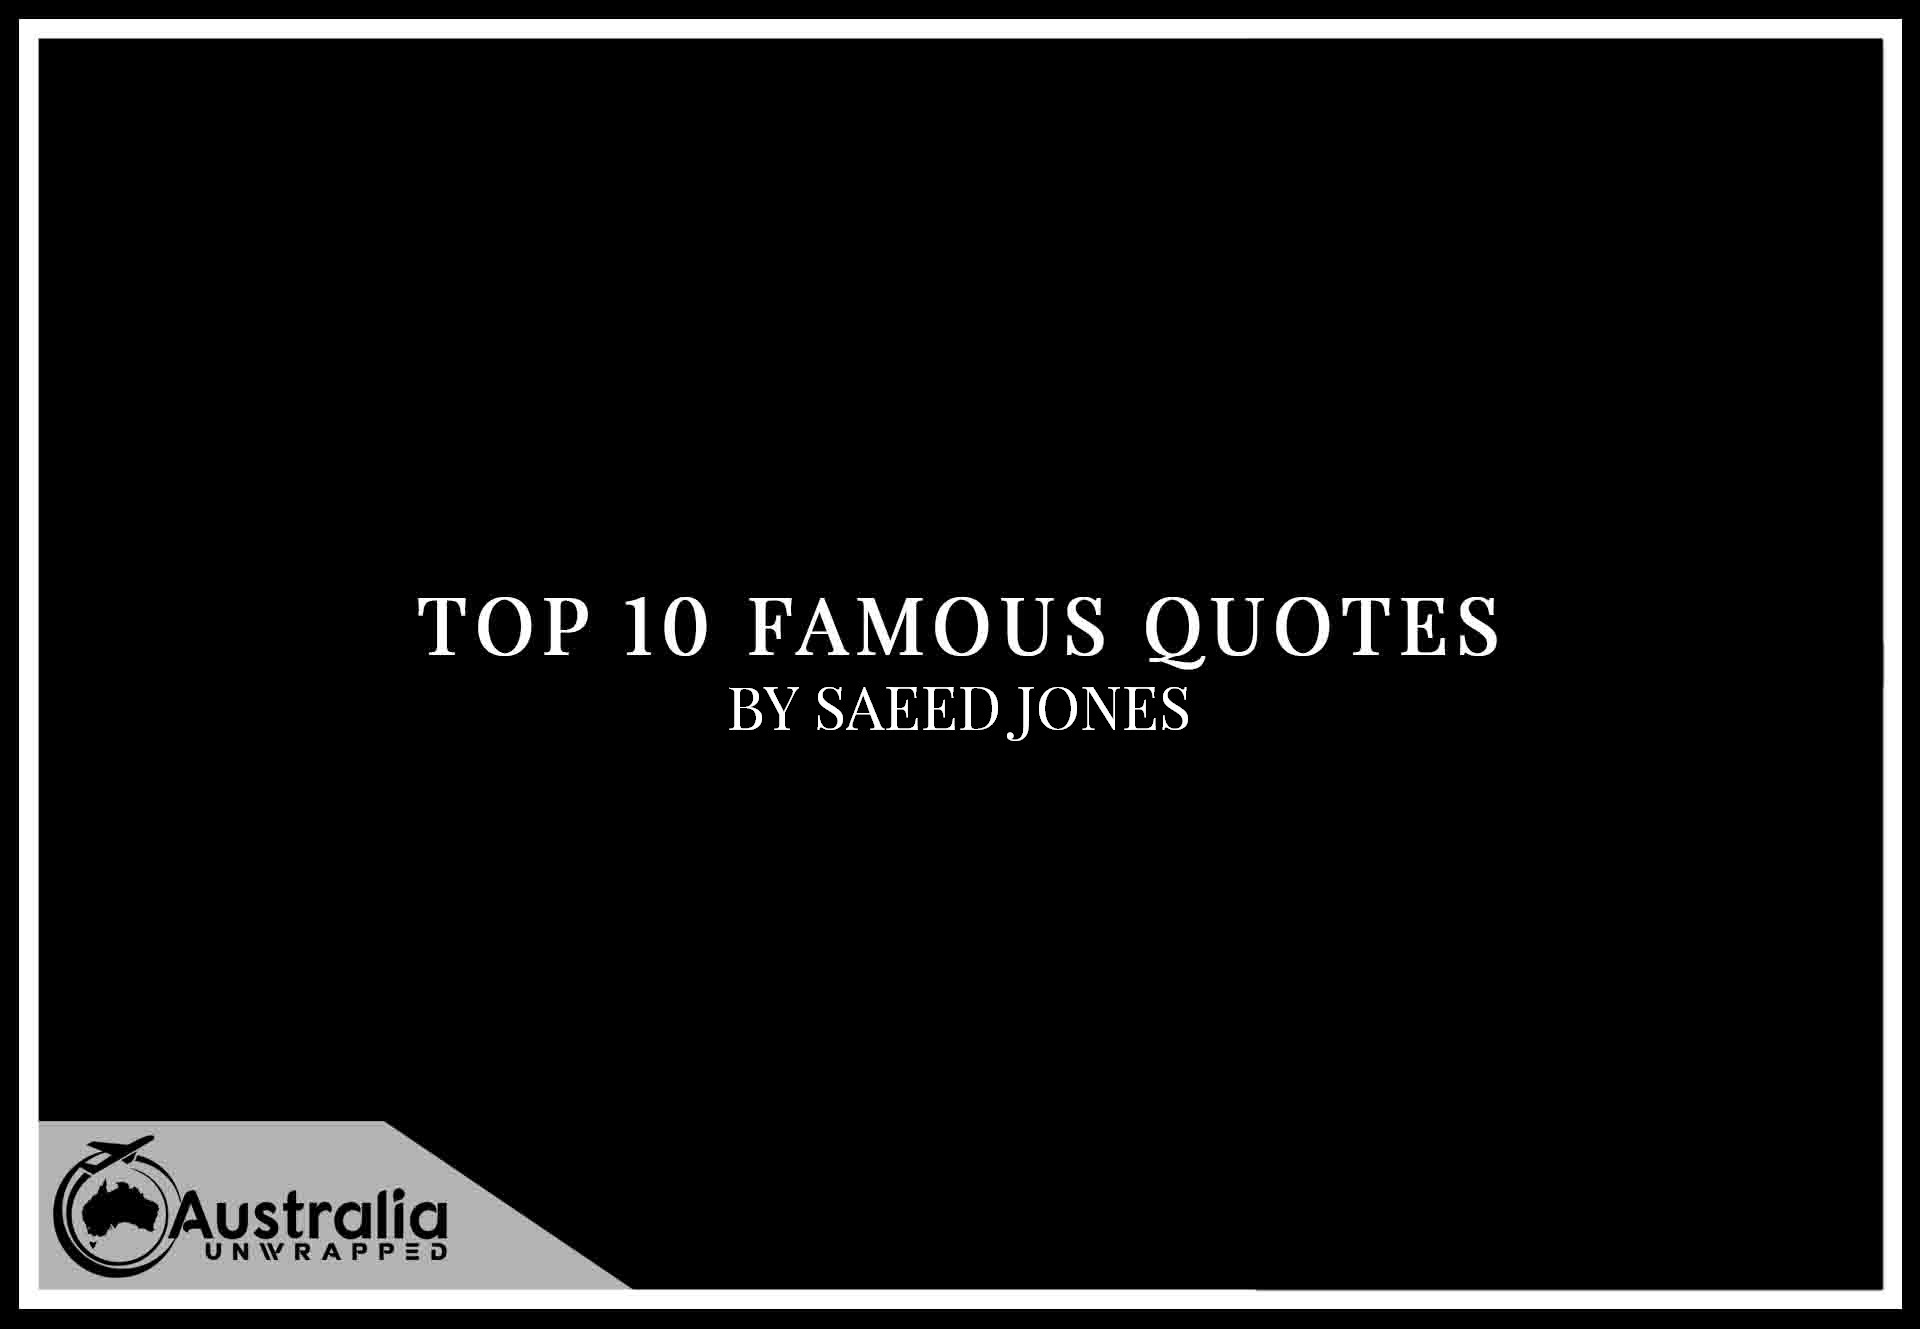 Top 10 Famous Quotes by Author Saeed Jones